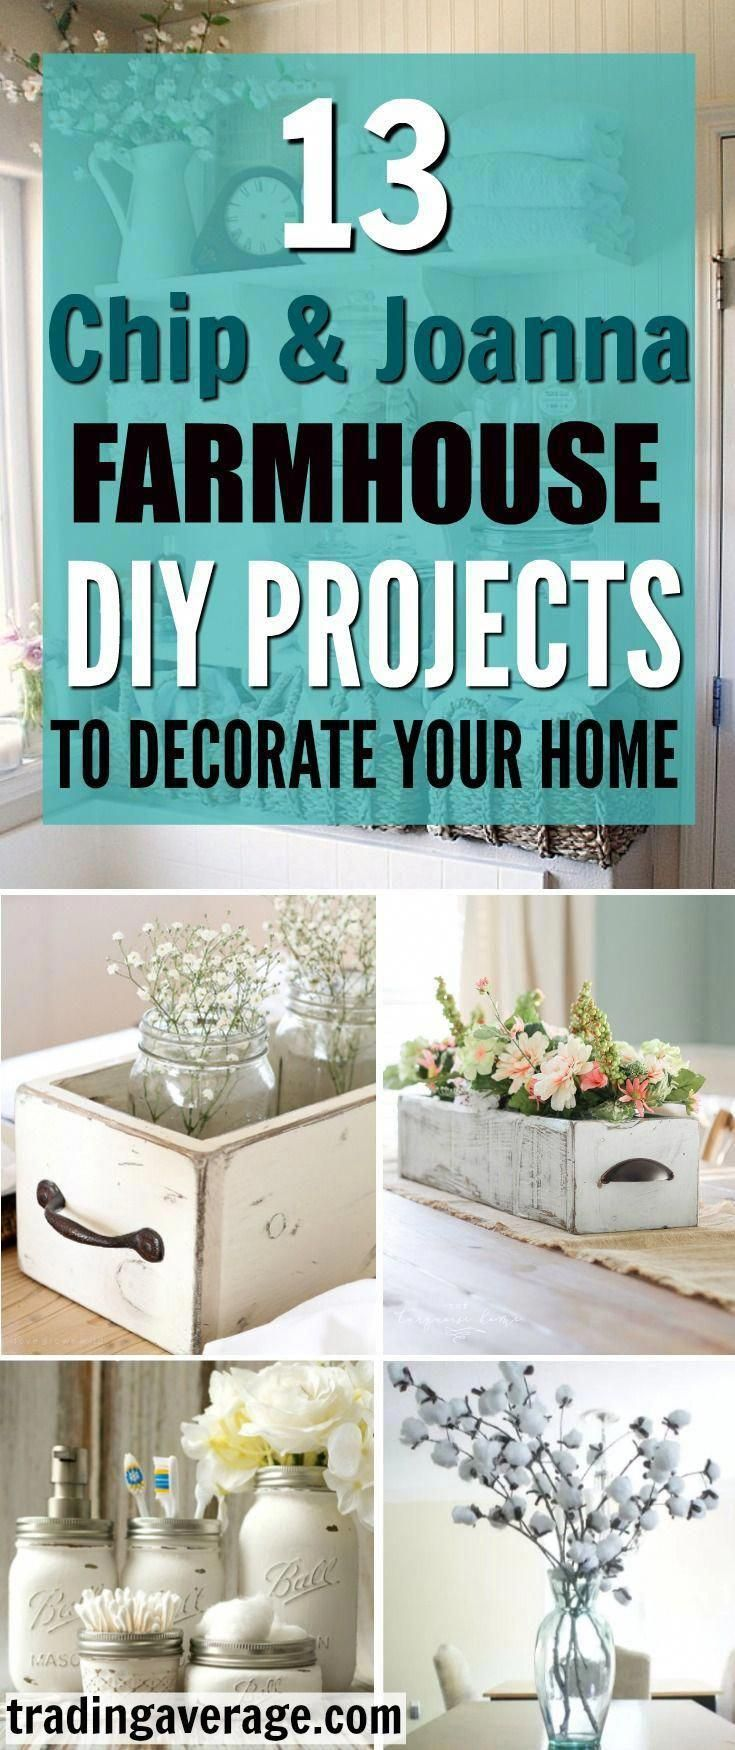 Are you looking for Farmhouse Decor projects, inspired by Chip and Joanna Gaines? This article will give you 13 amazing DIY Farmhouse projects that you will love! #countryfarmhousedecorbedroom #farmhouselivingroomdecor #chipandjoannagainesfarmhouse